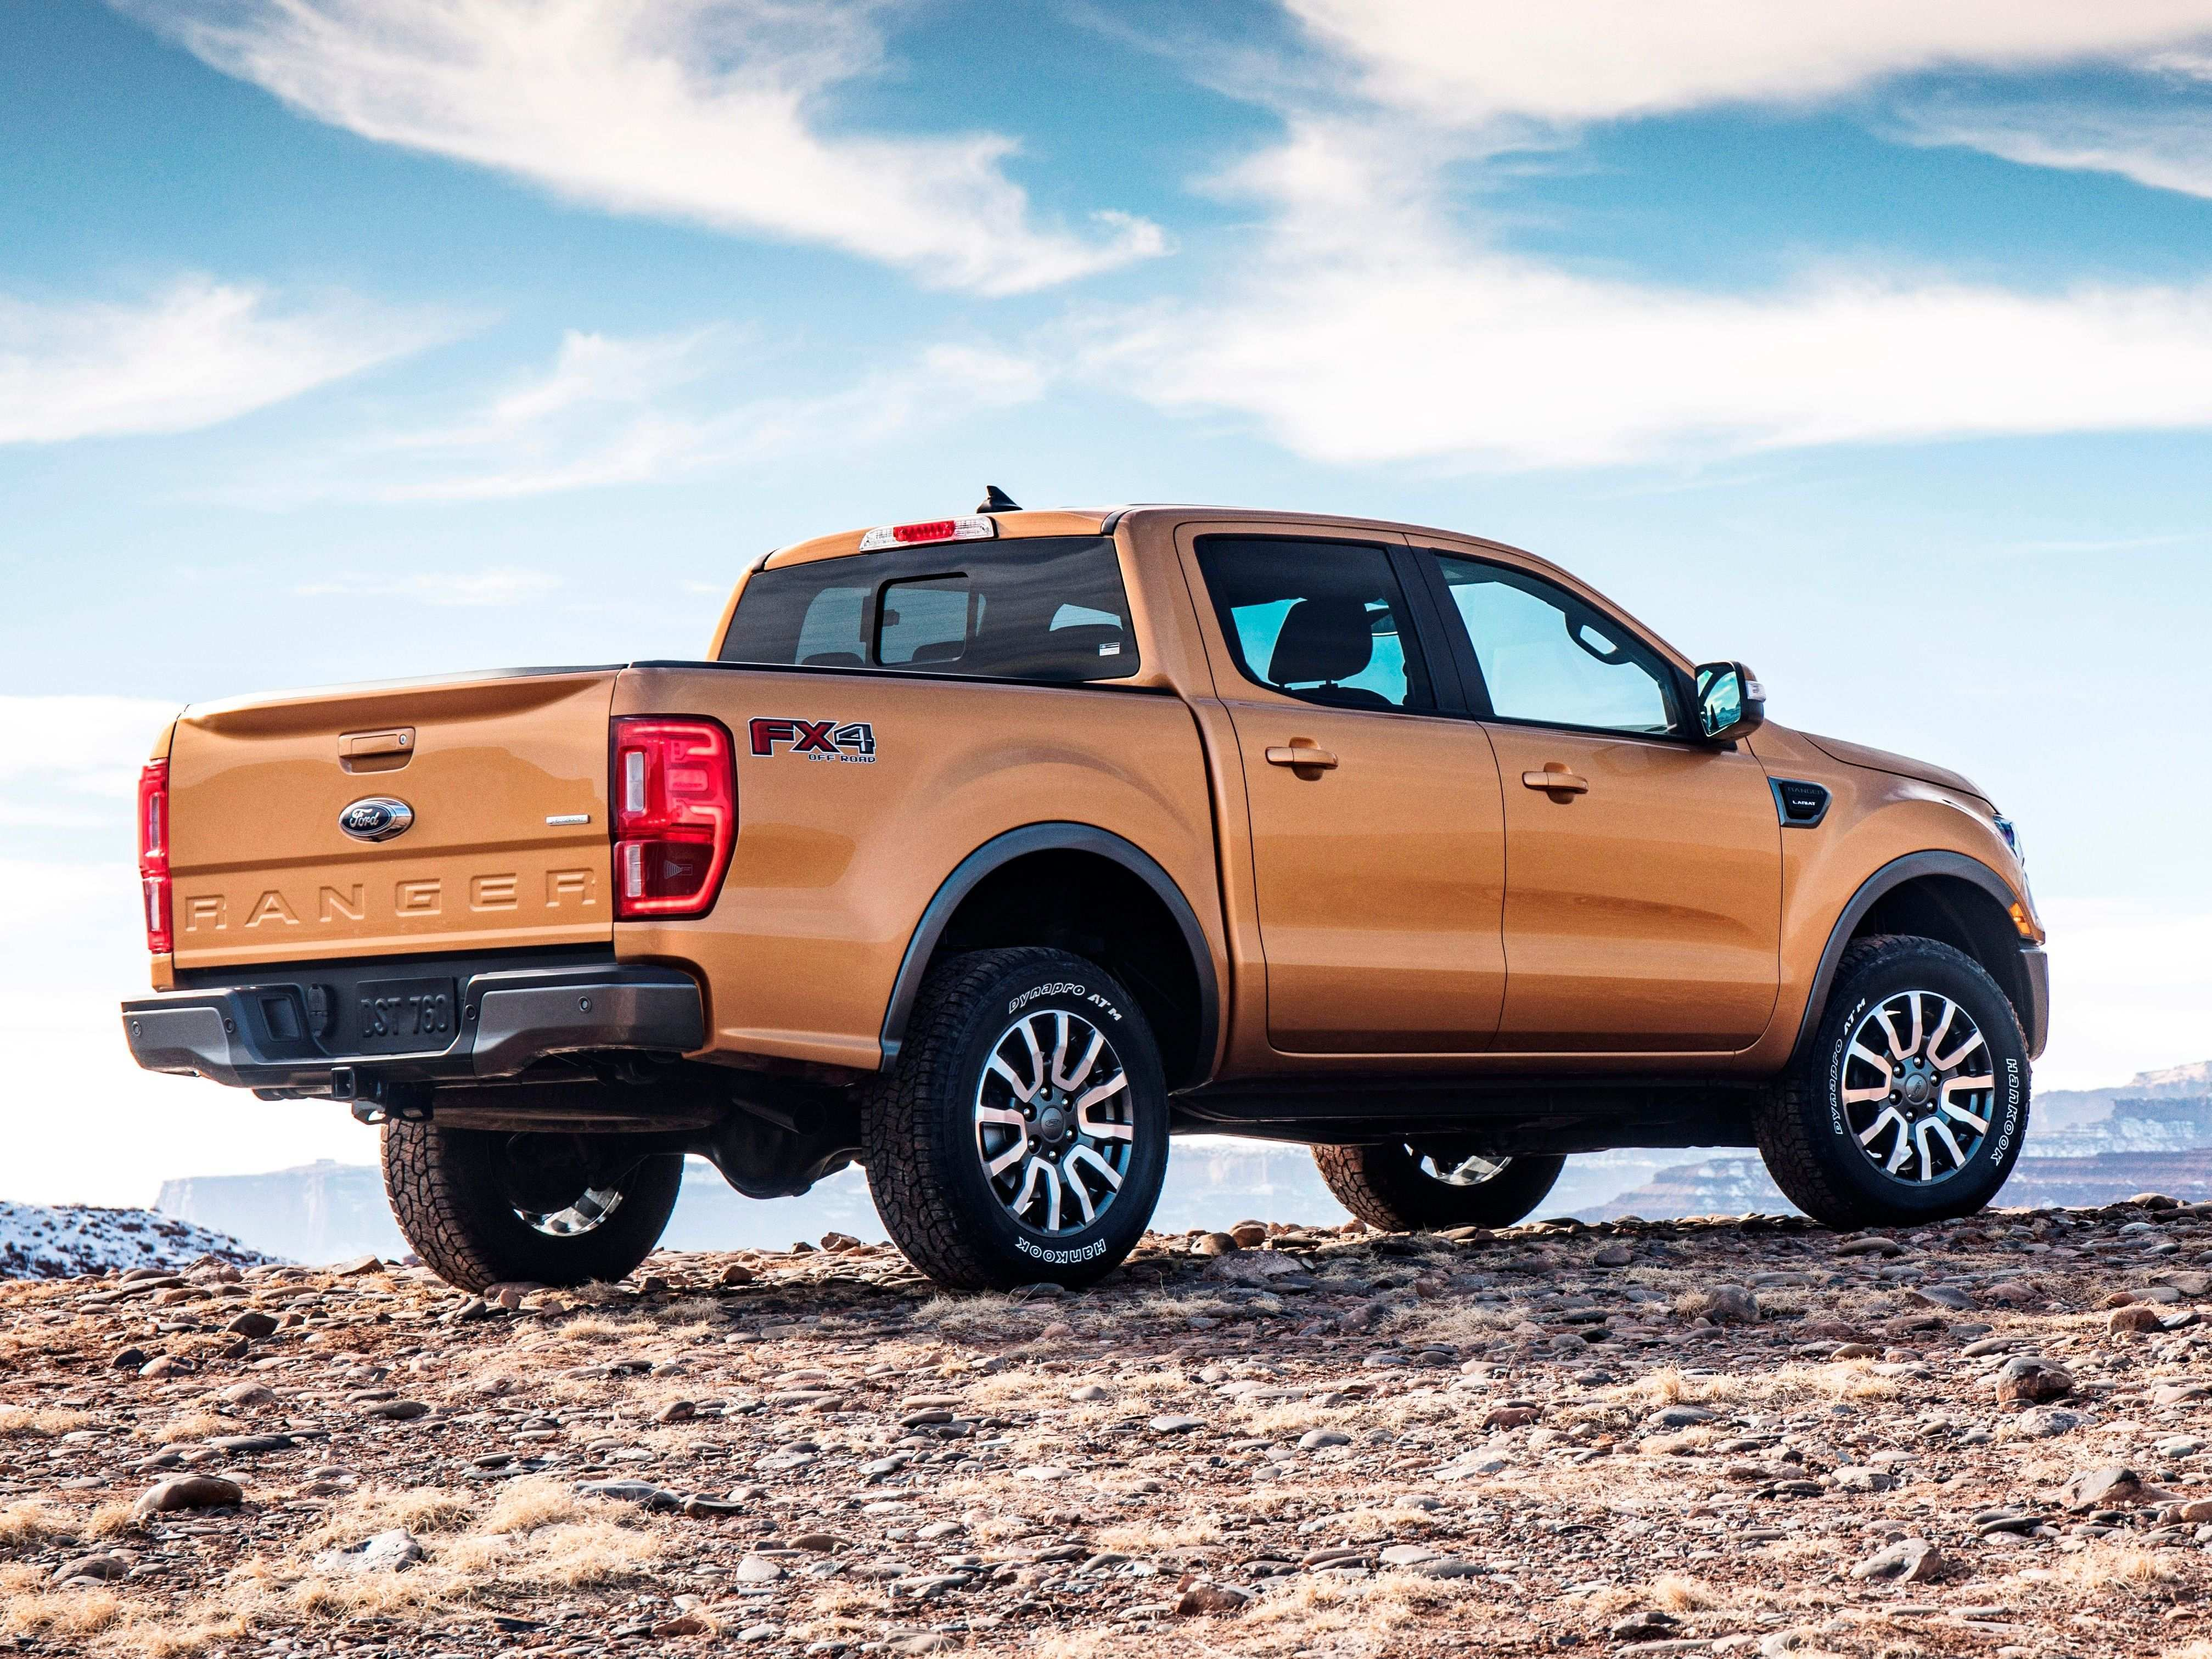 39 All New 2019 Ford Ranger Vs Bmw Canyon Release